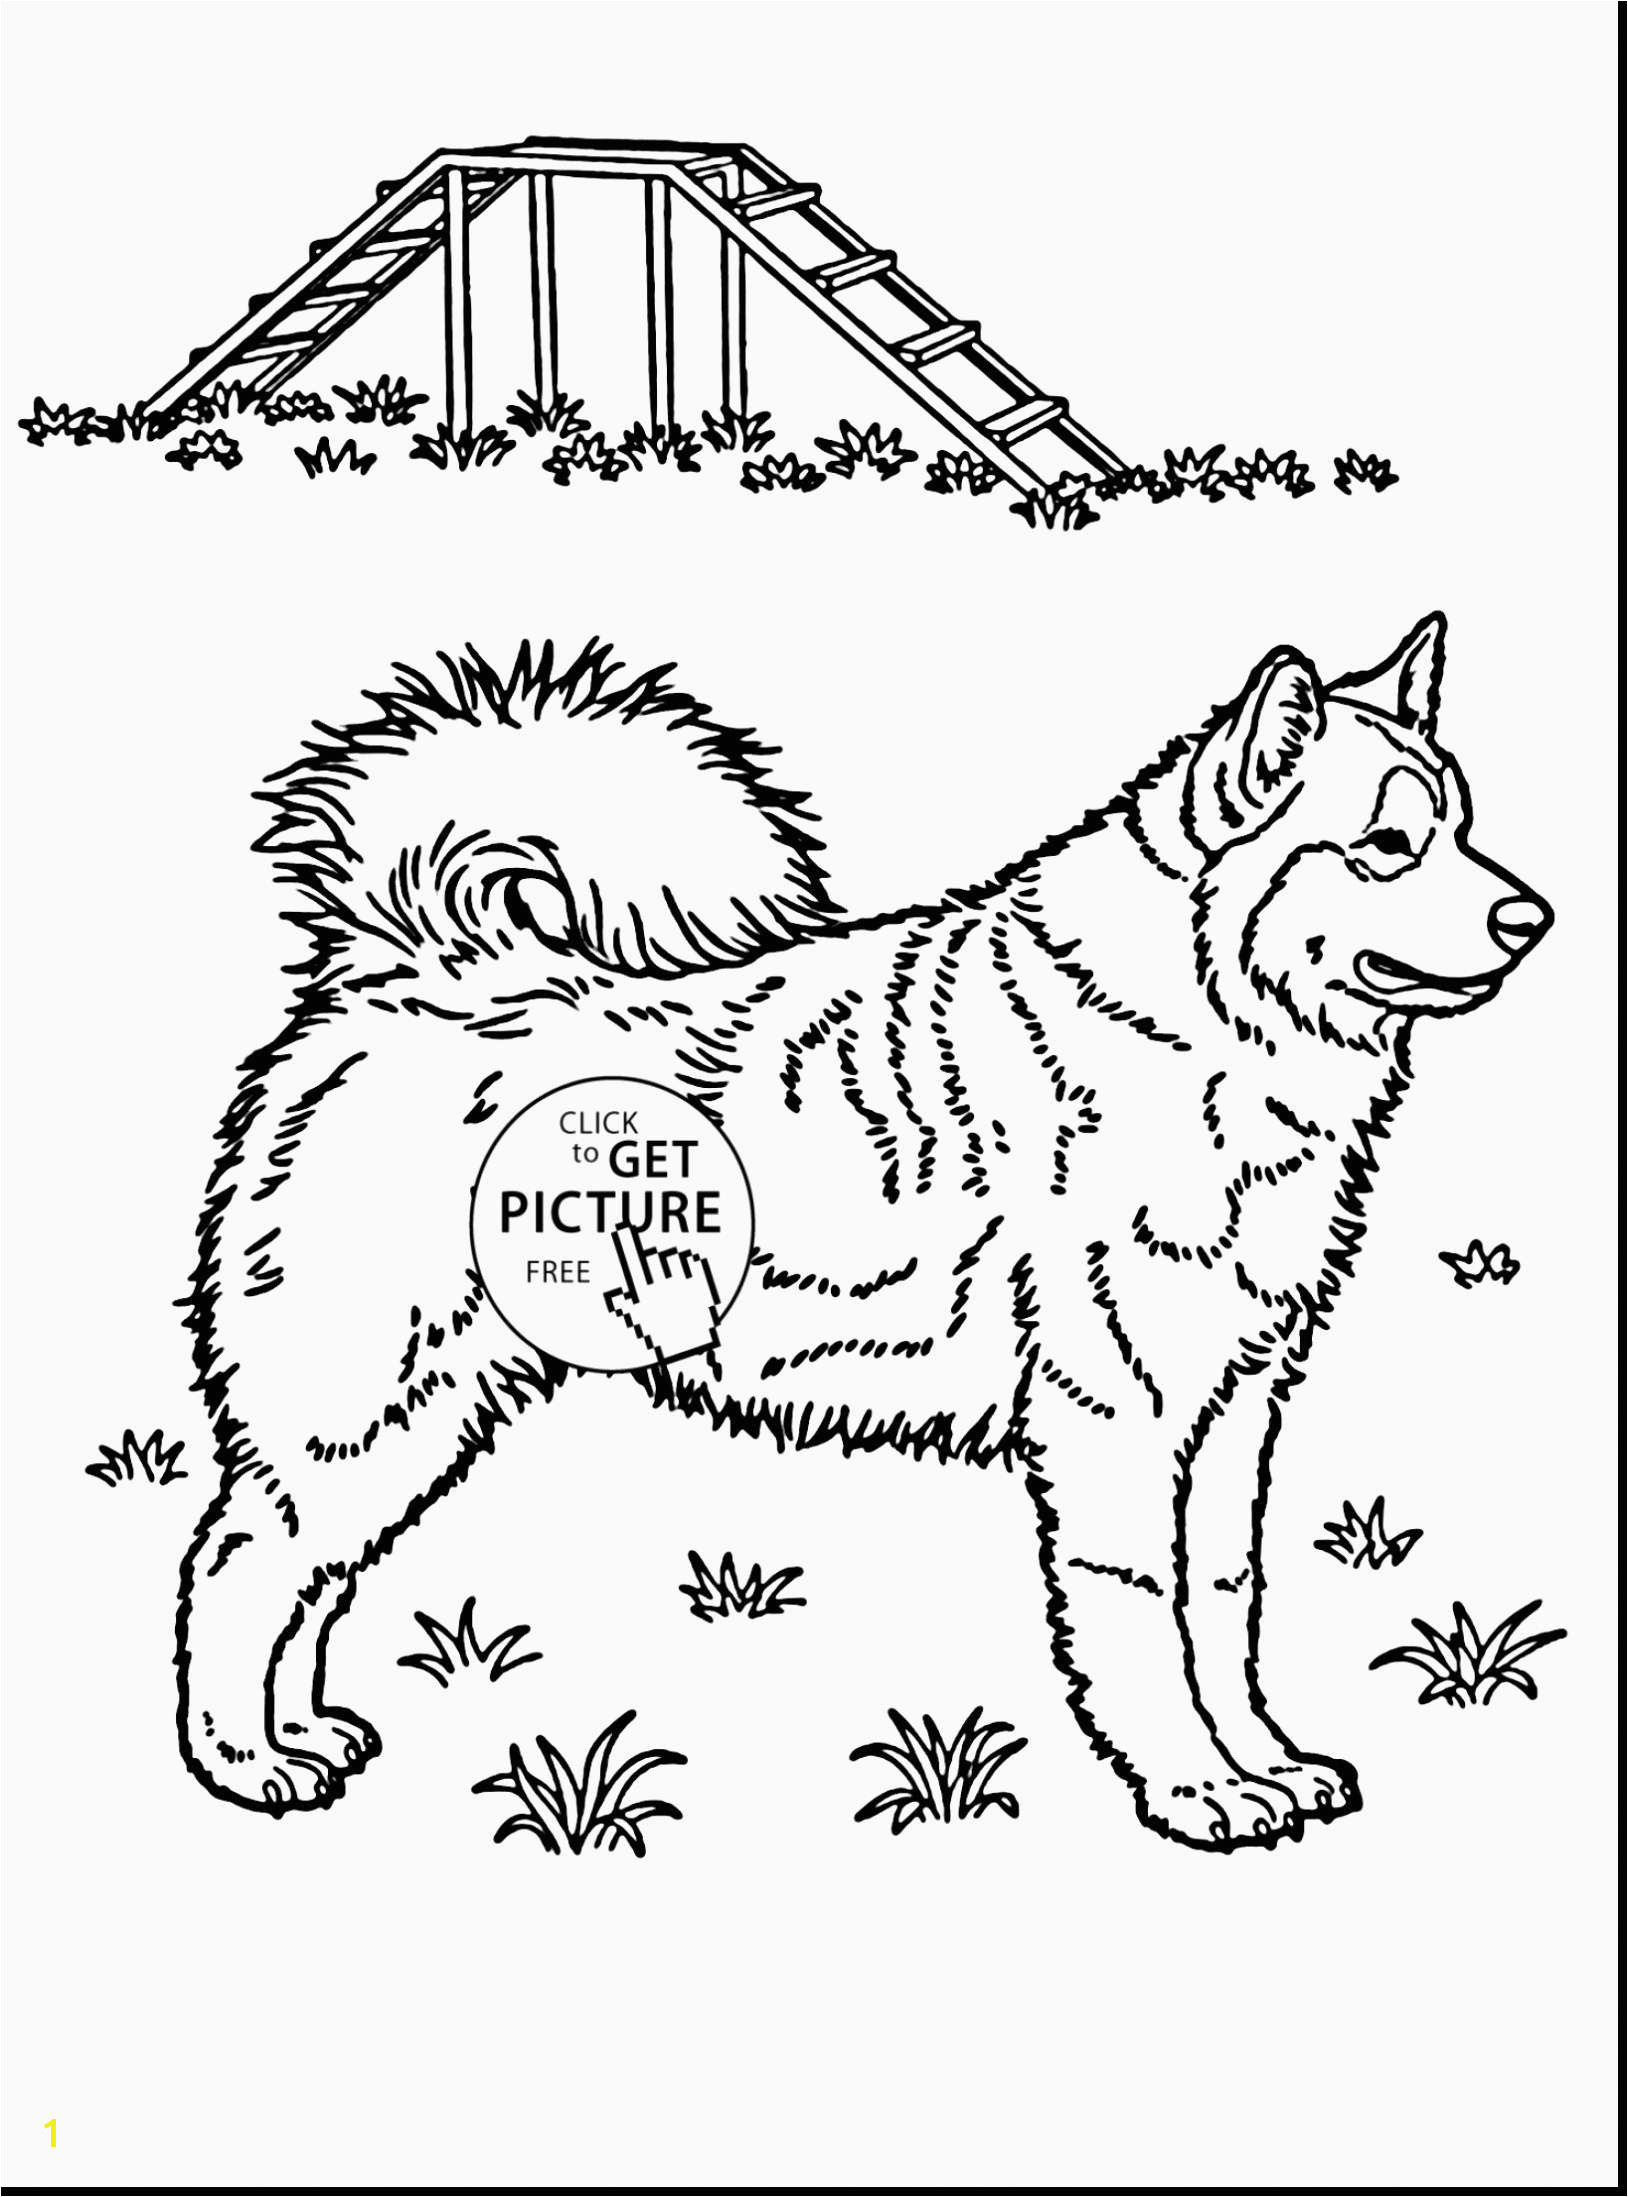 Mermaid Coloring Pages Husky Coloring Pages Beautiful Husky Coloring 0d Free Coloring Pages Fun Time